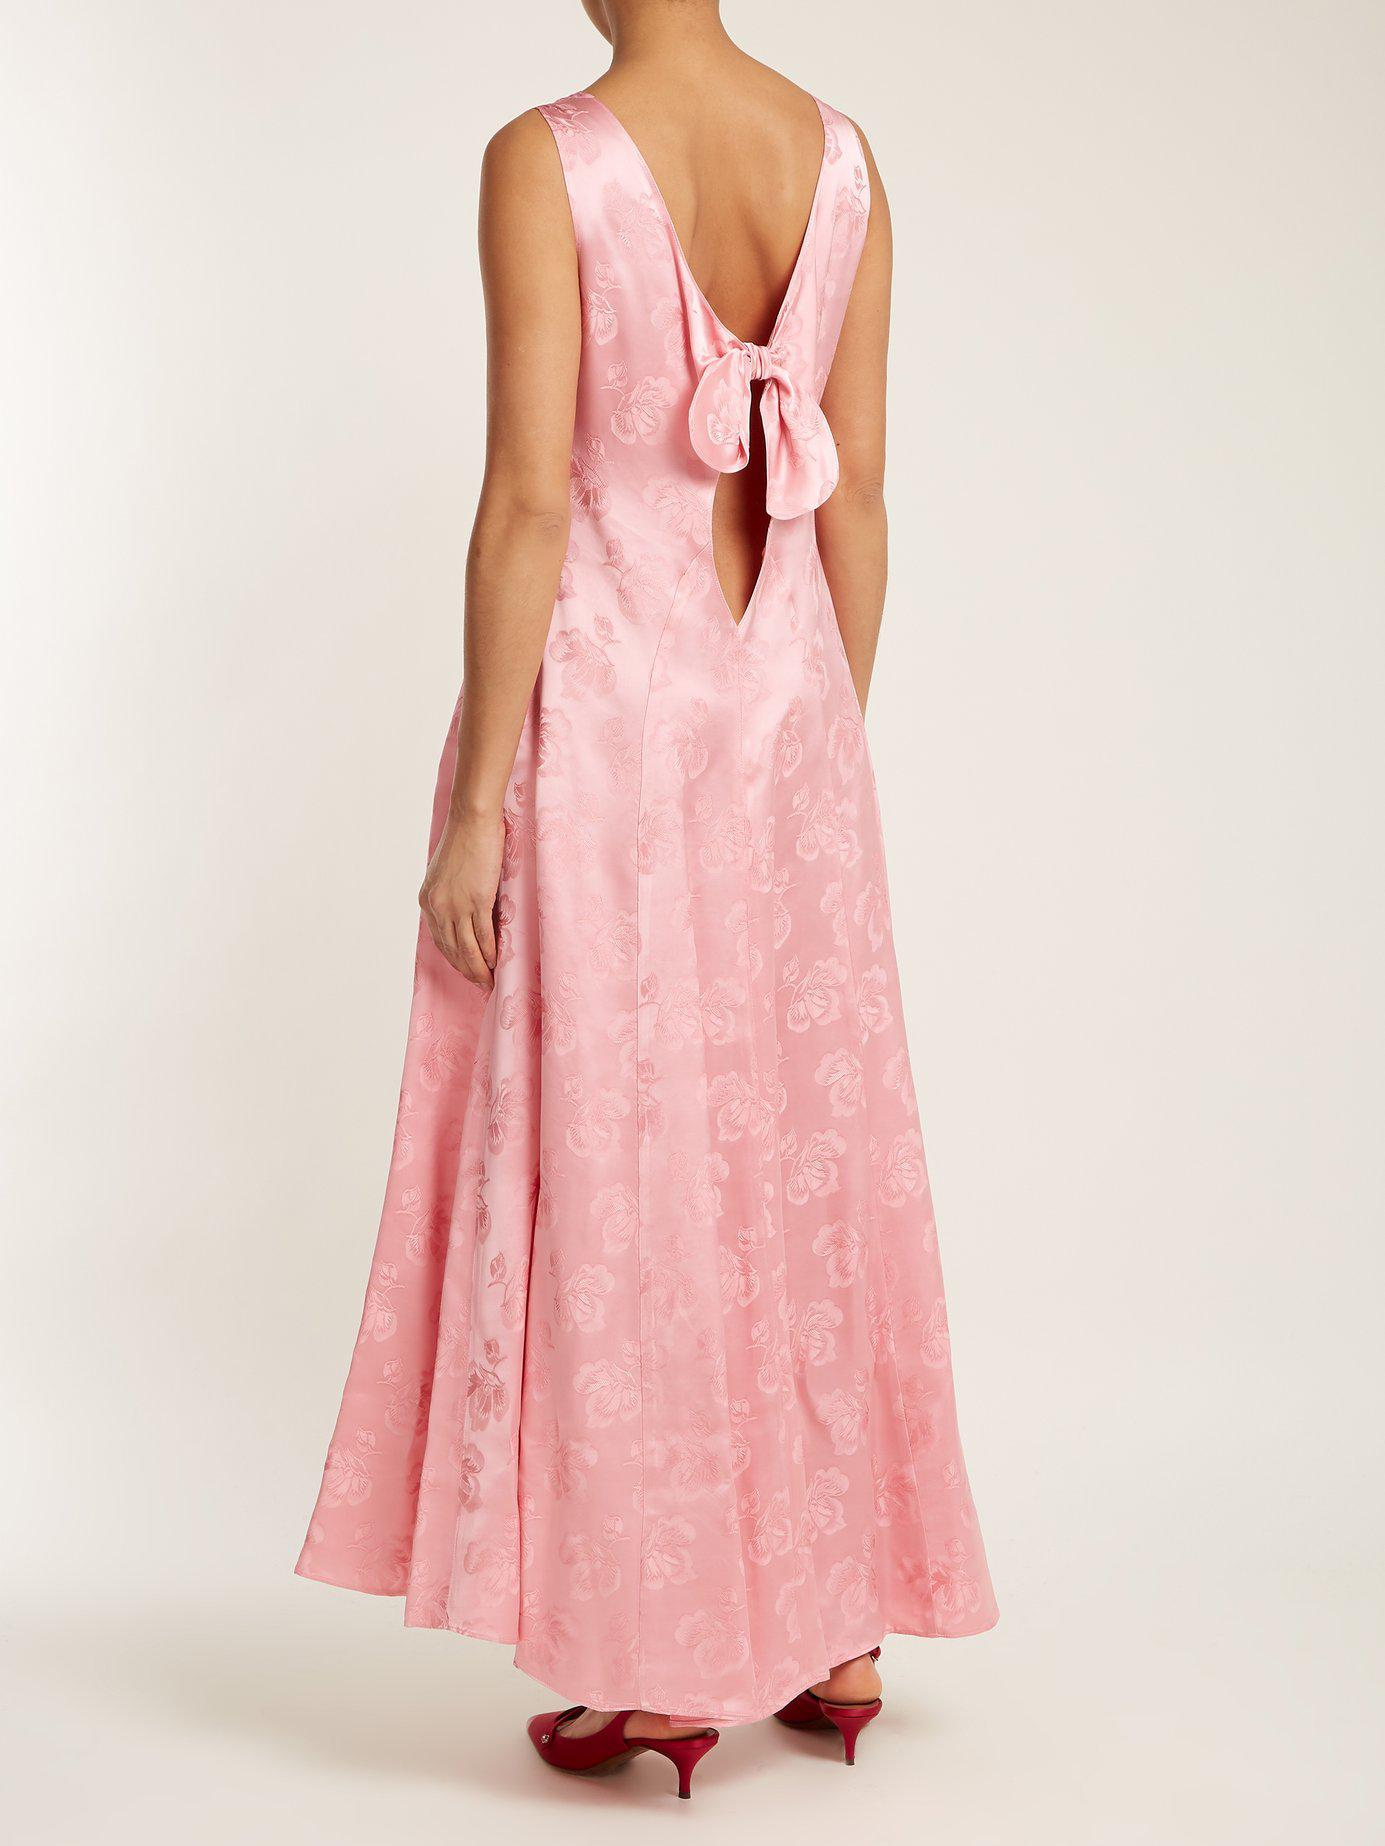 c8d837d0a330 Lyst - ALEXACHUNG Open Back Floral Jacquard Dress in Pink